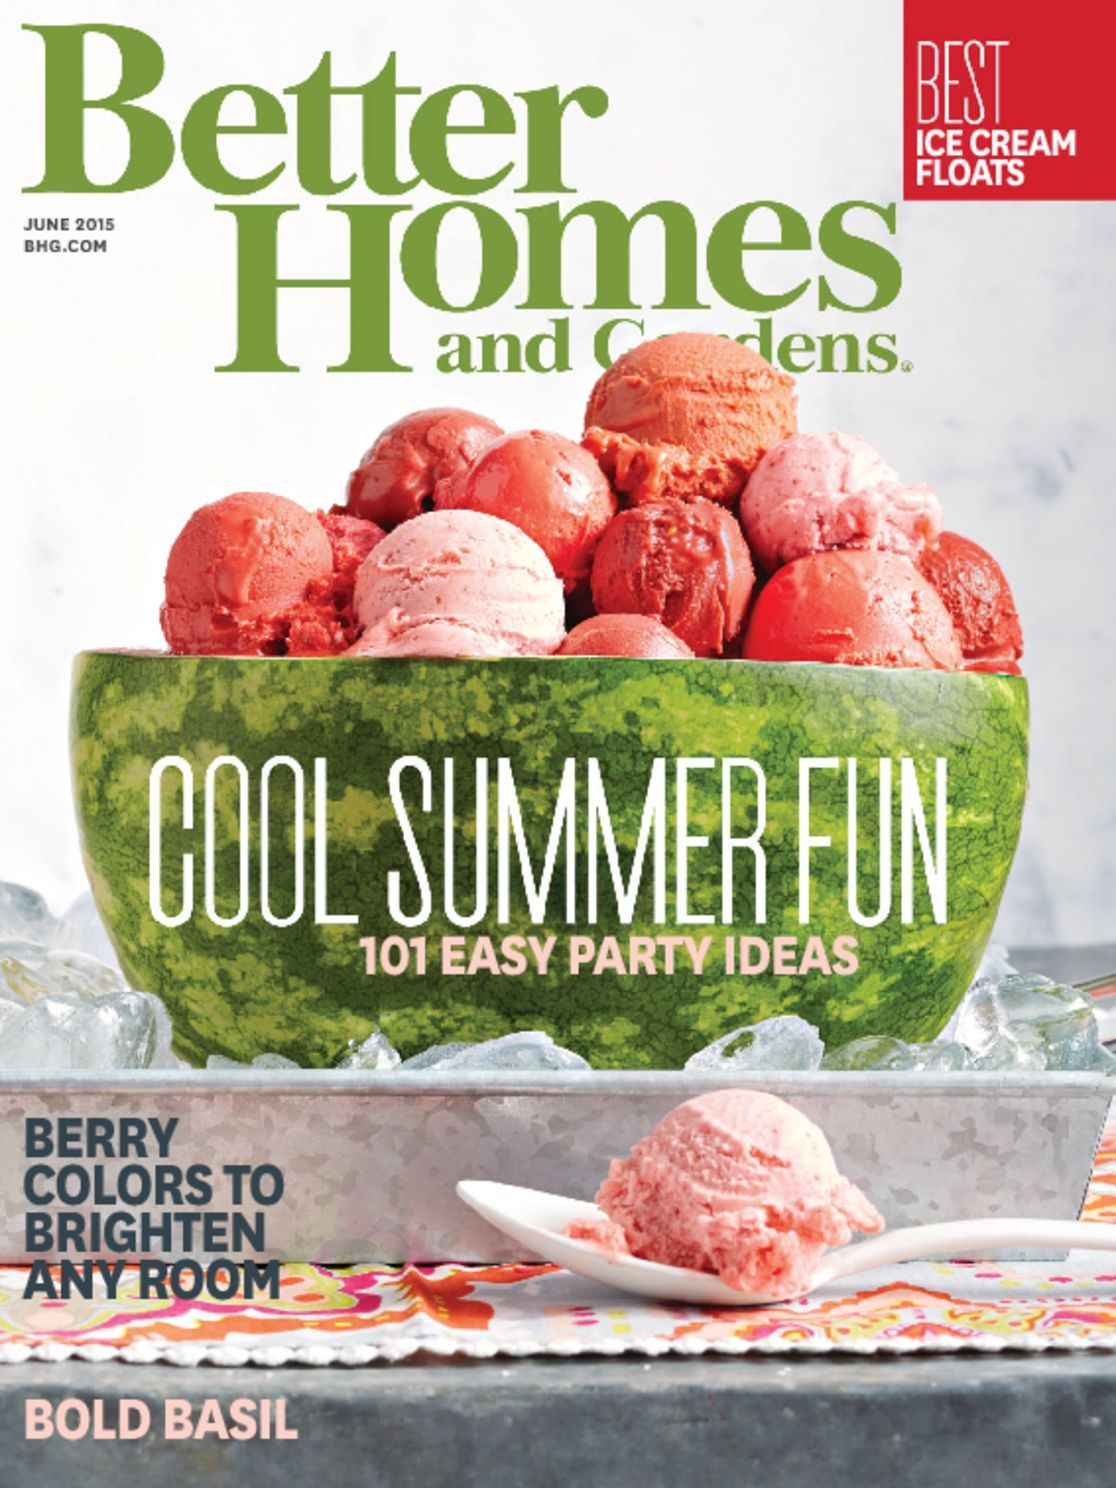 Better Homes and Garden| Walking On Sunshine Recipes